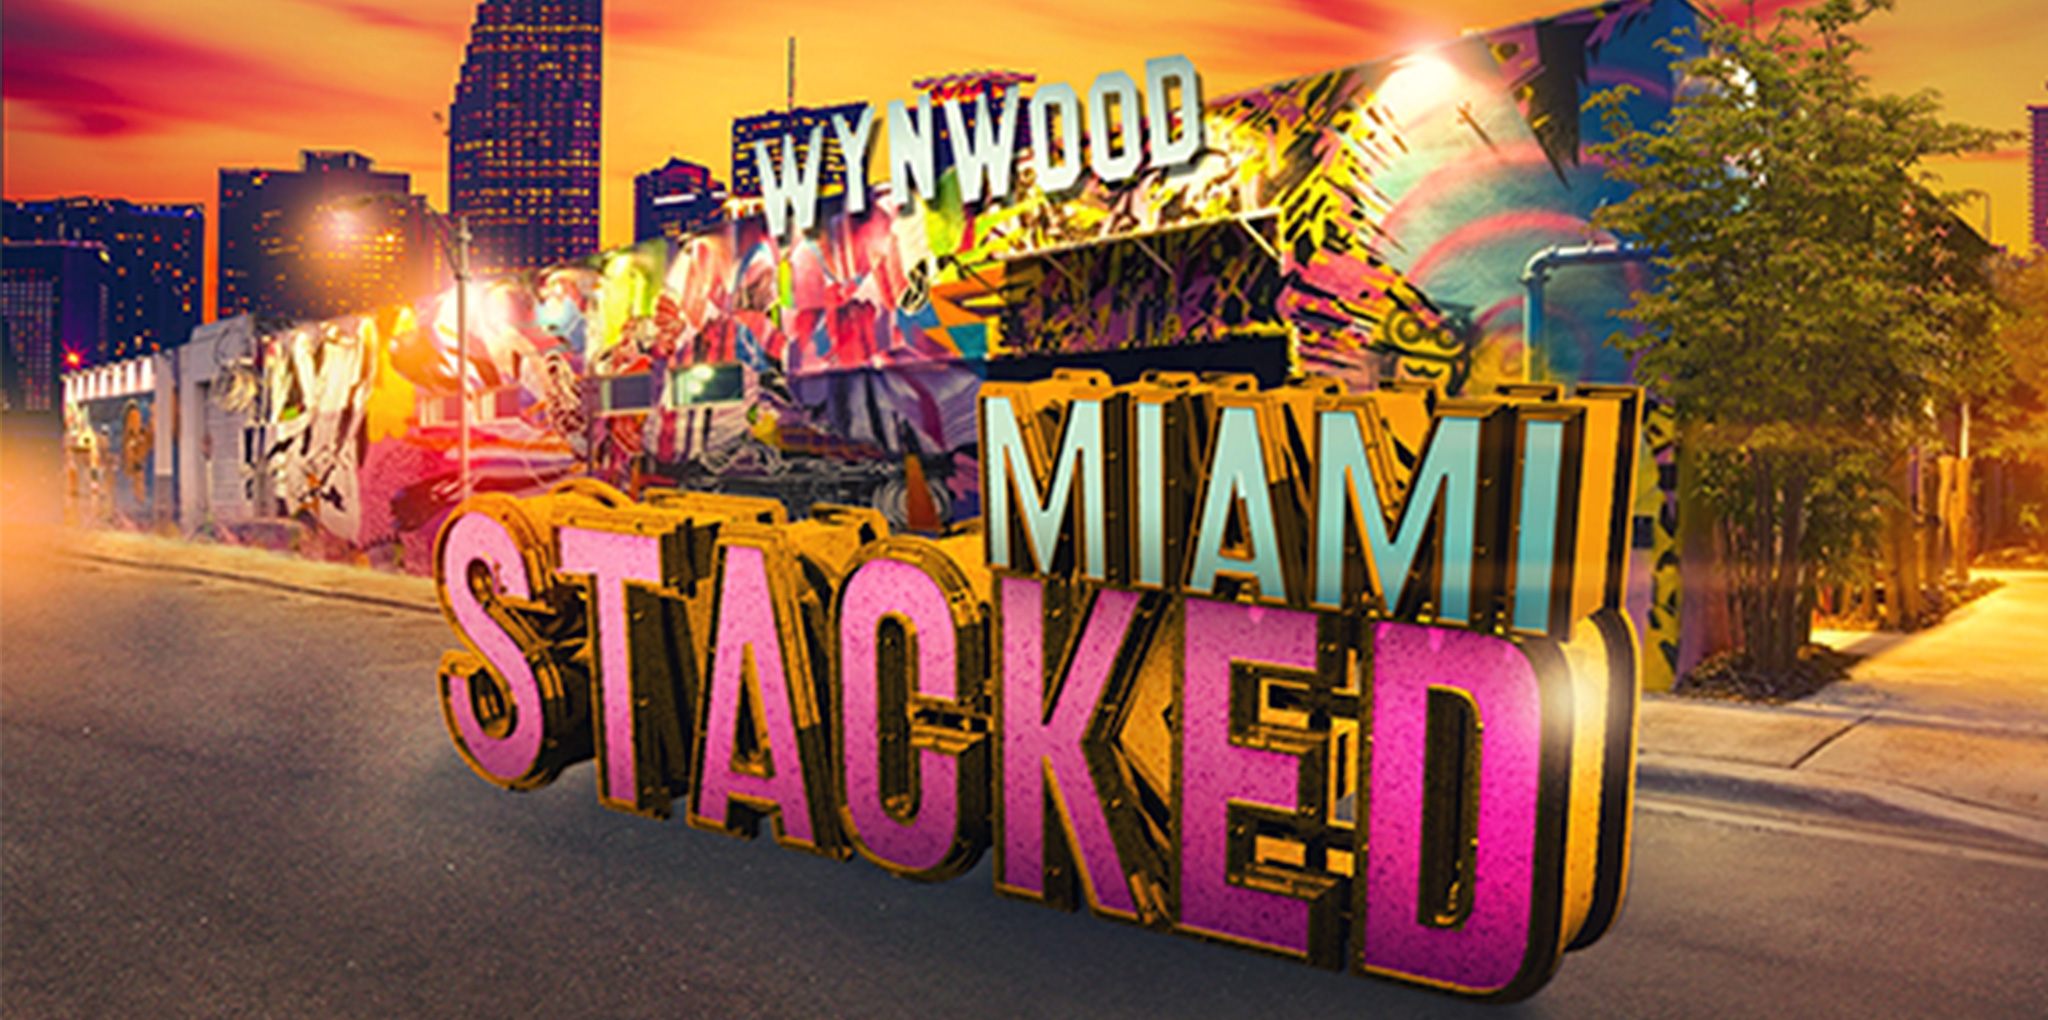 STACKED: MIAMI Block Party Image